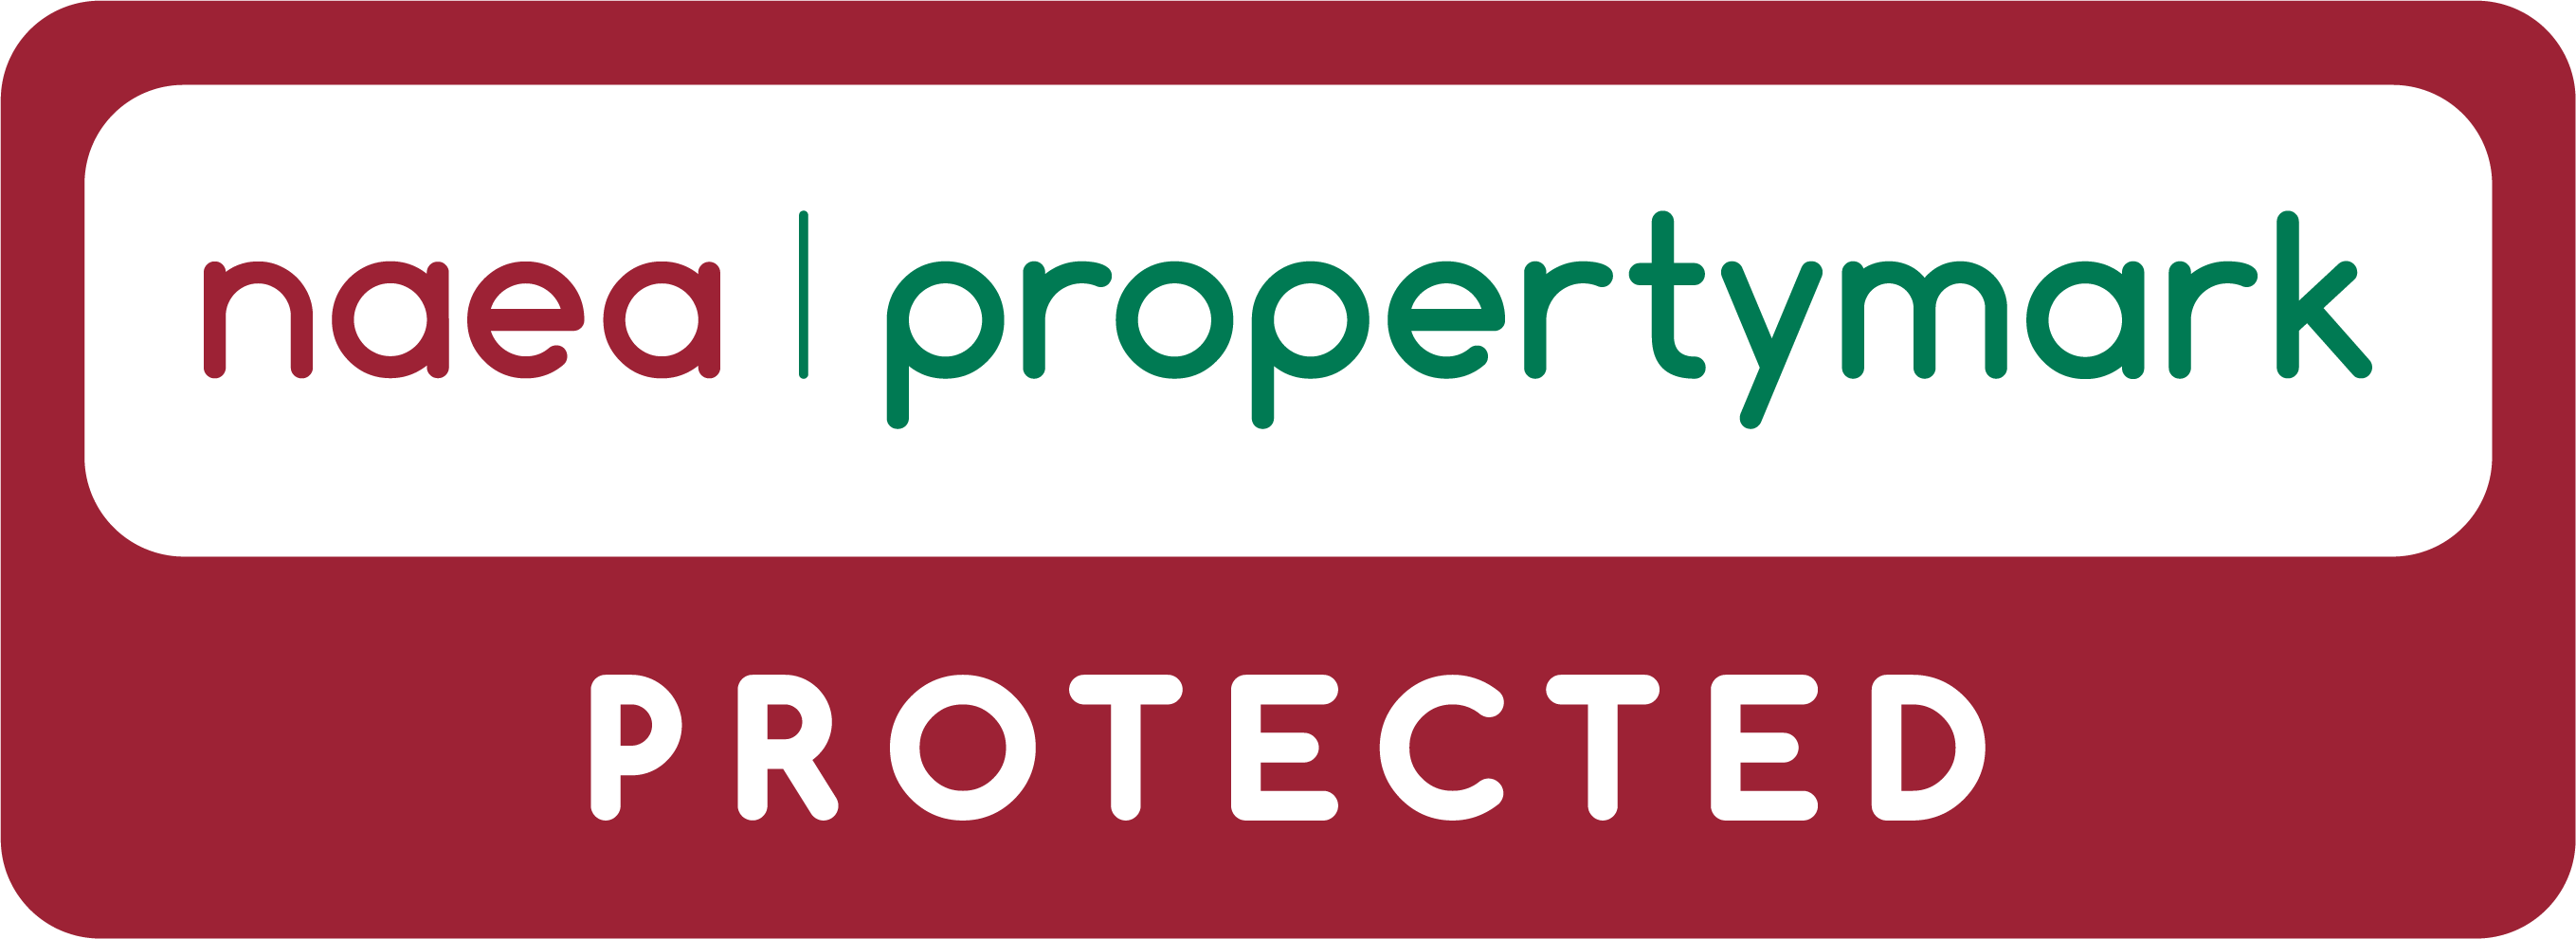 NAEA Propertymark Protected